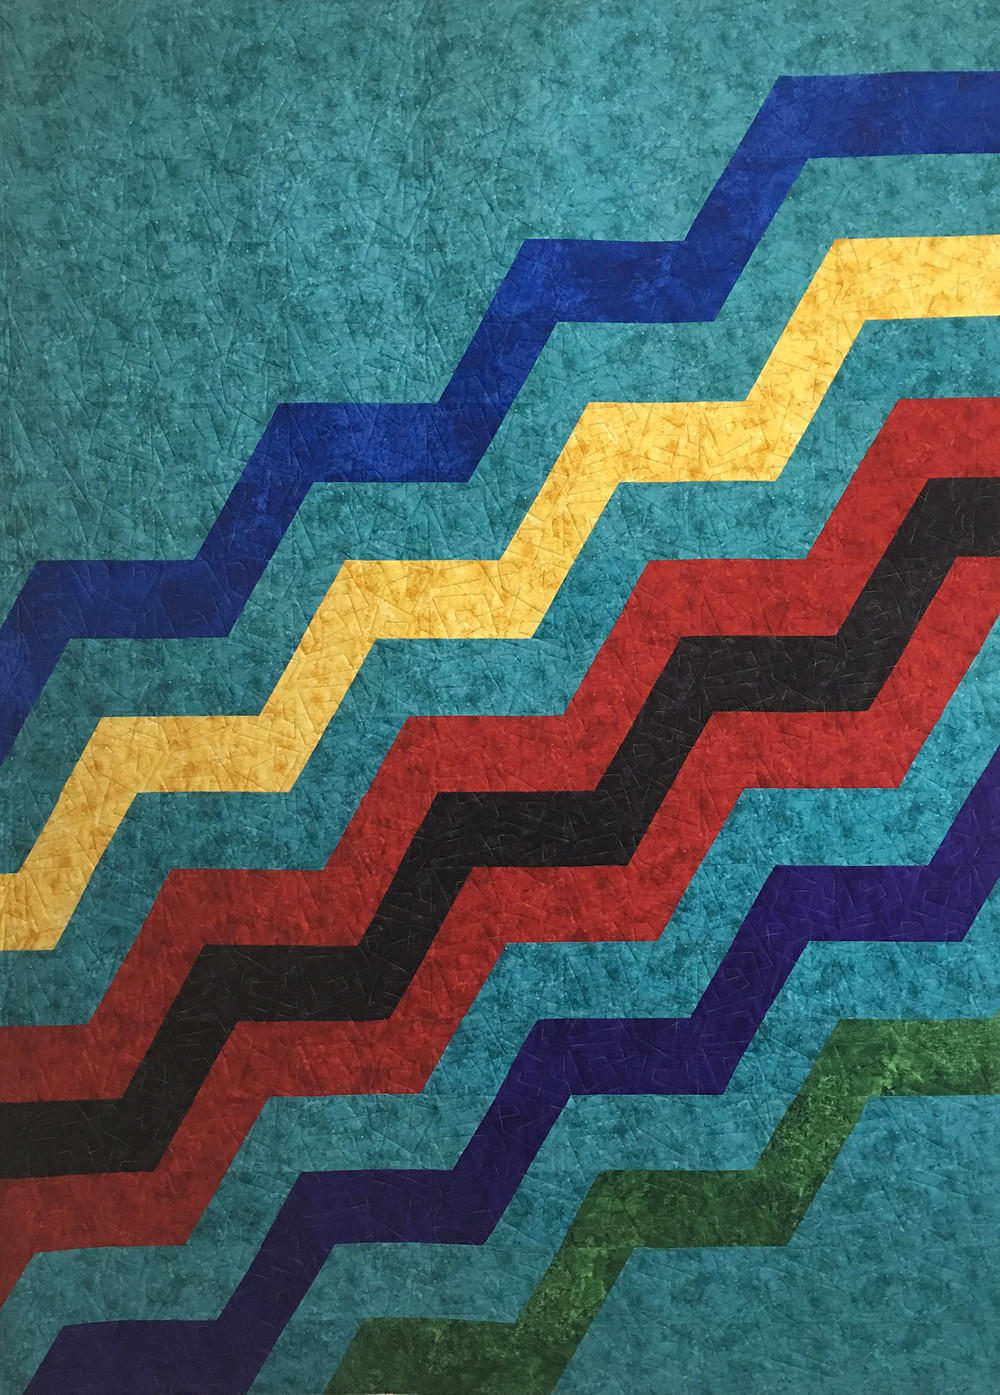 Modern Zig Zag Quilt by Sally Krebs